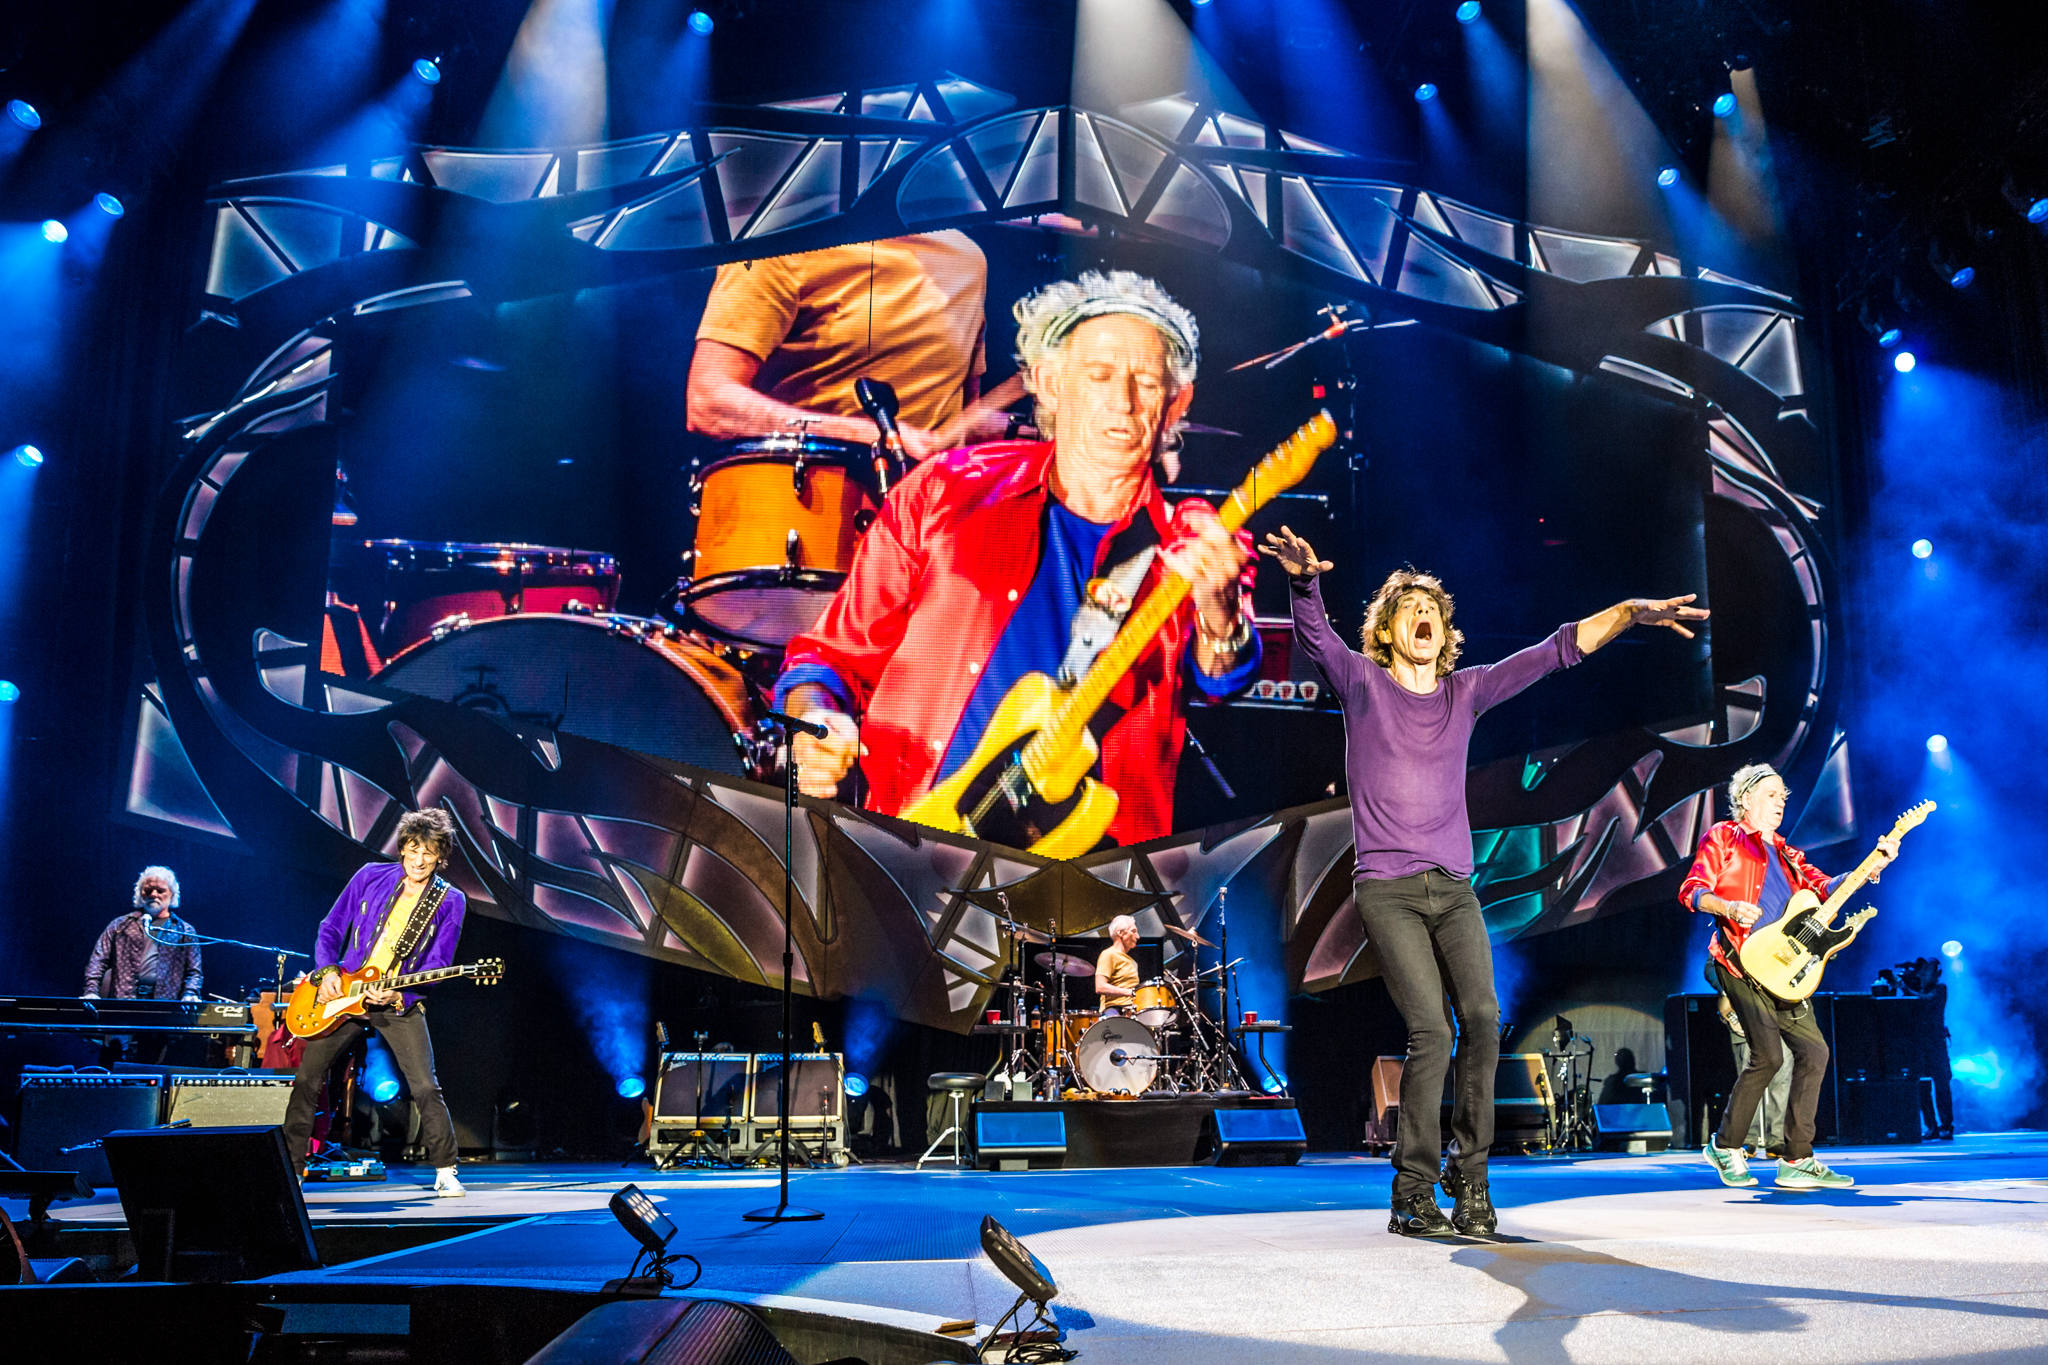 RollingStones_GATech15_iWally-10.jpg